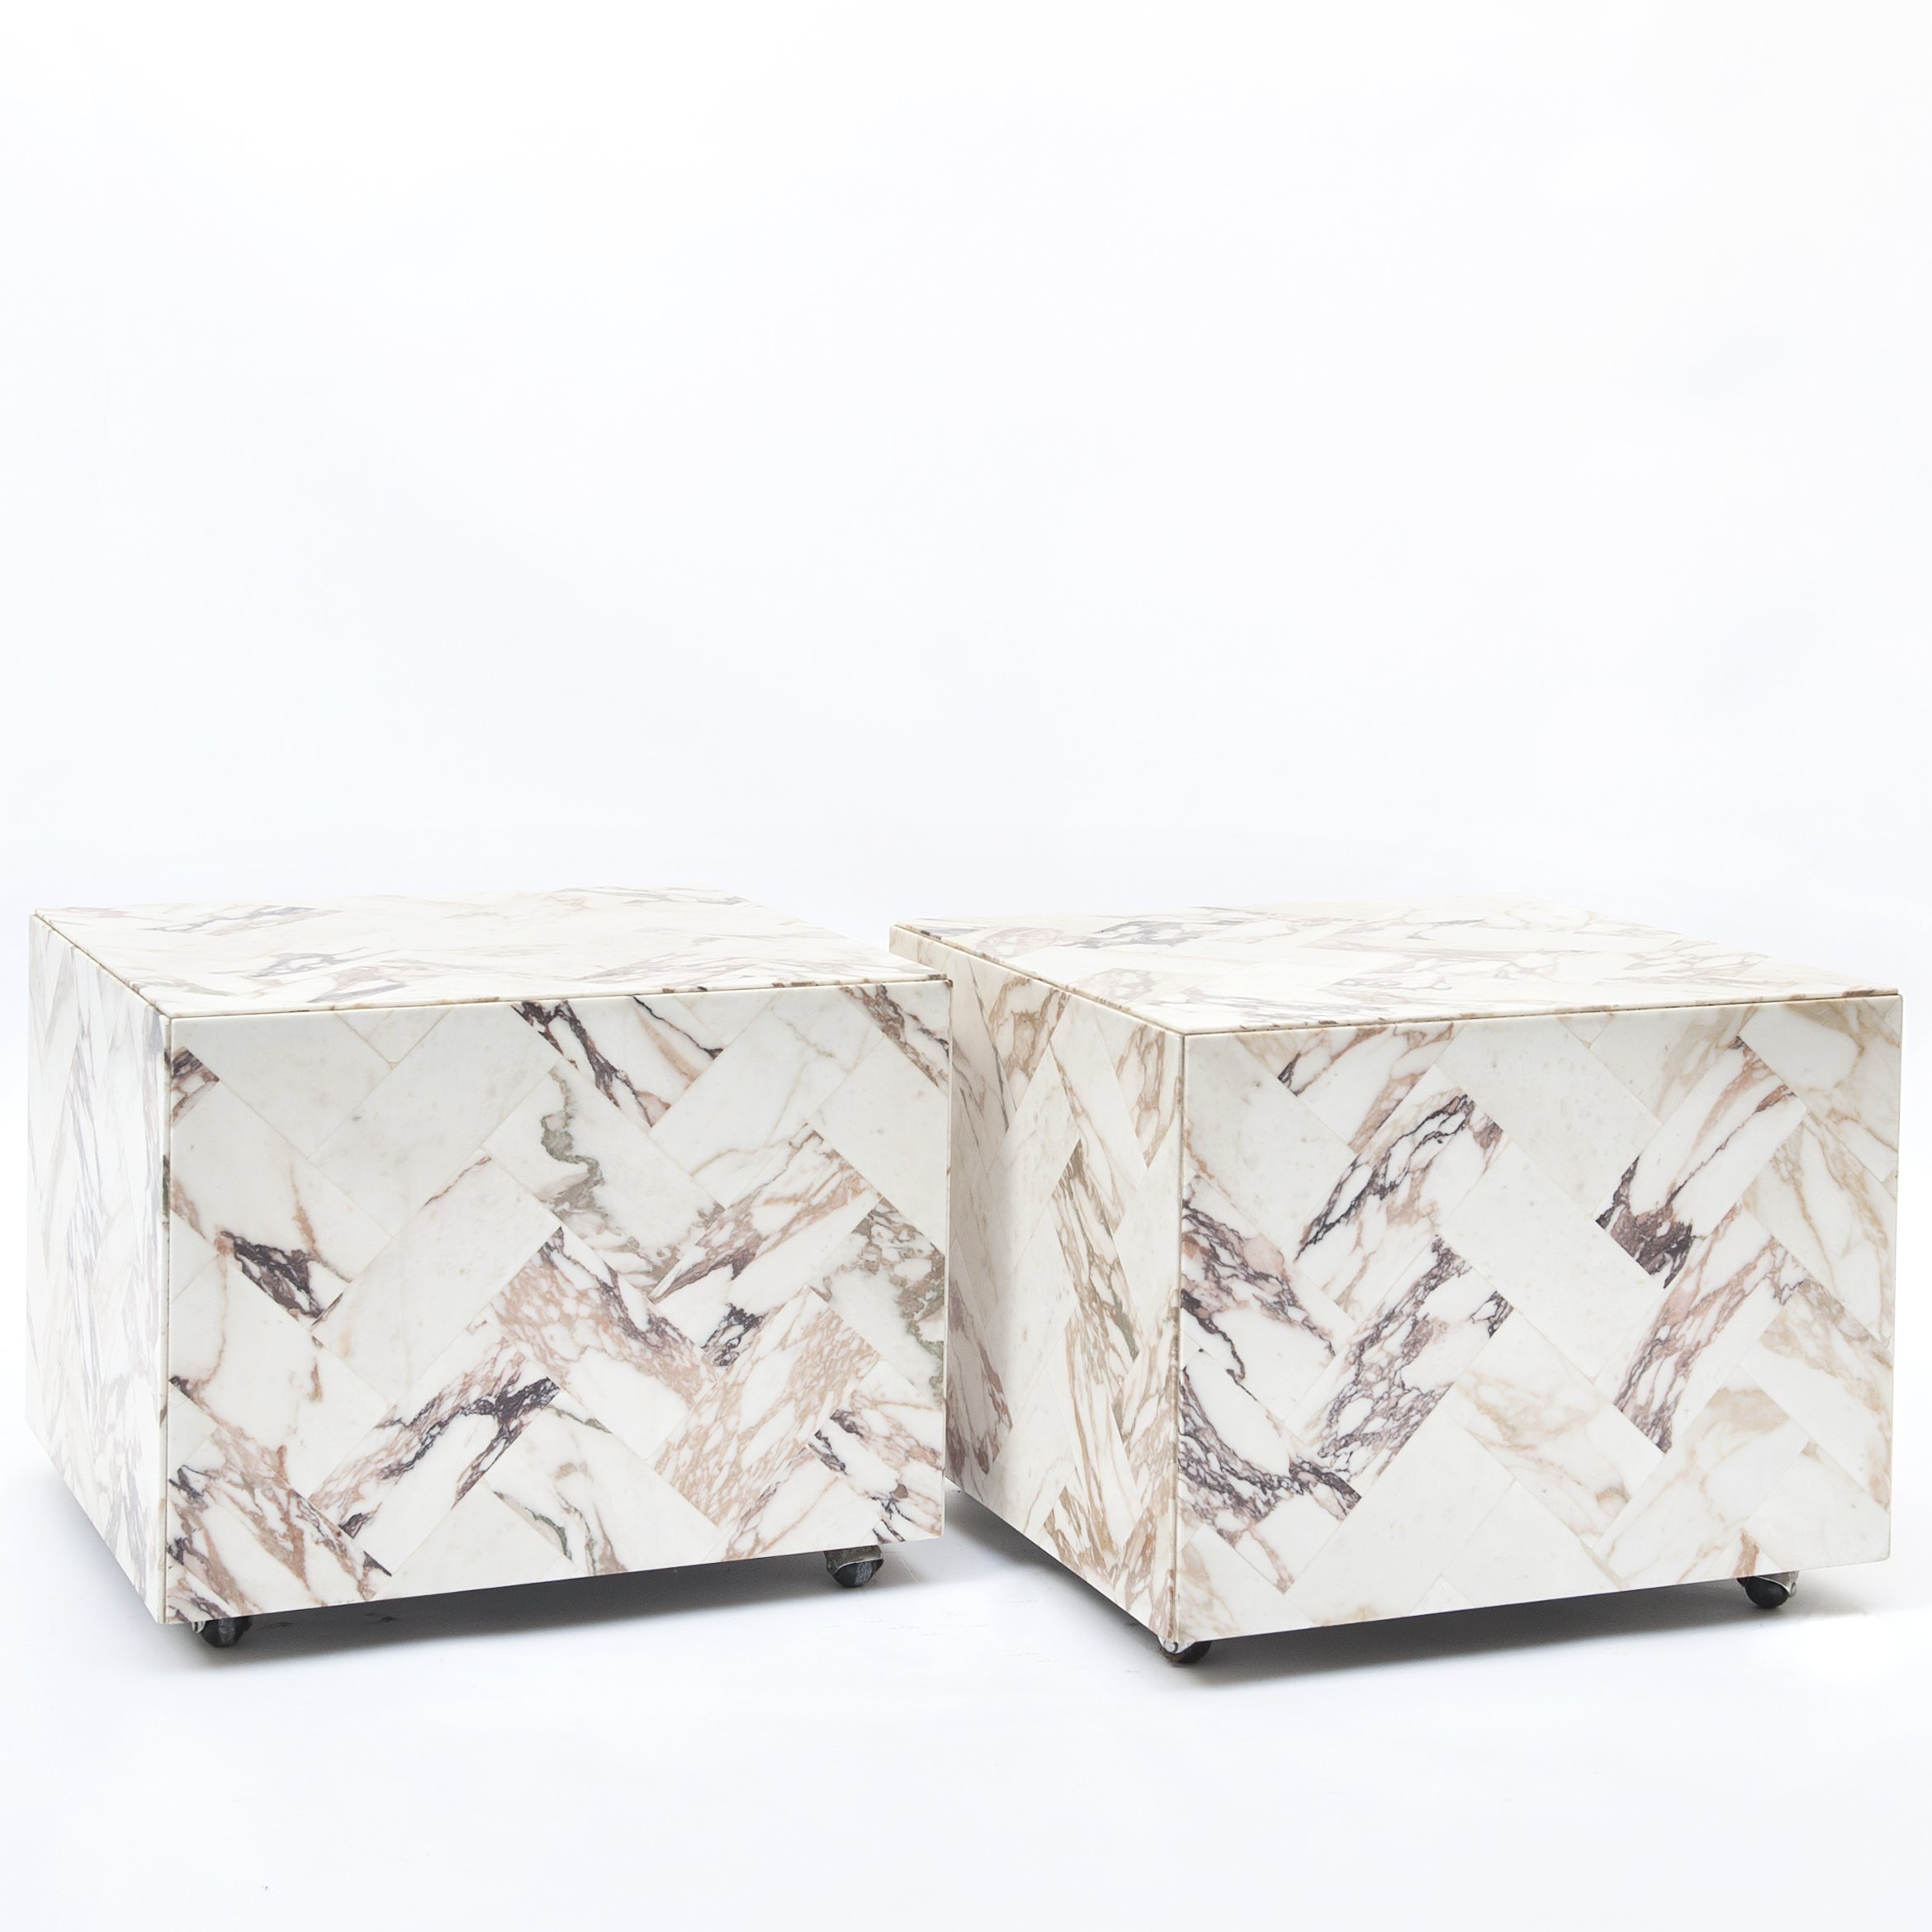 Vintage Cube Shaped Side Tables In Marble 1970s 146122